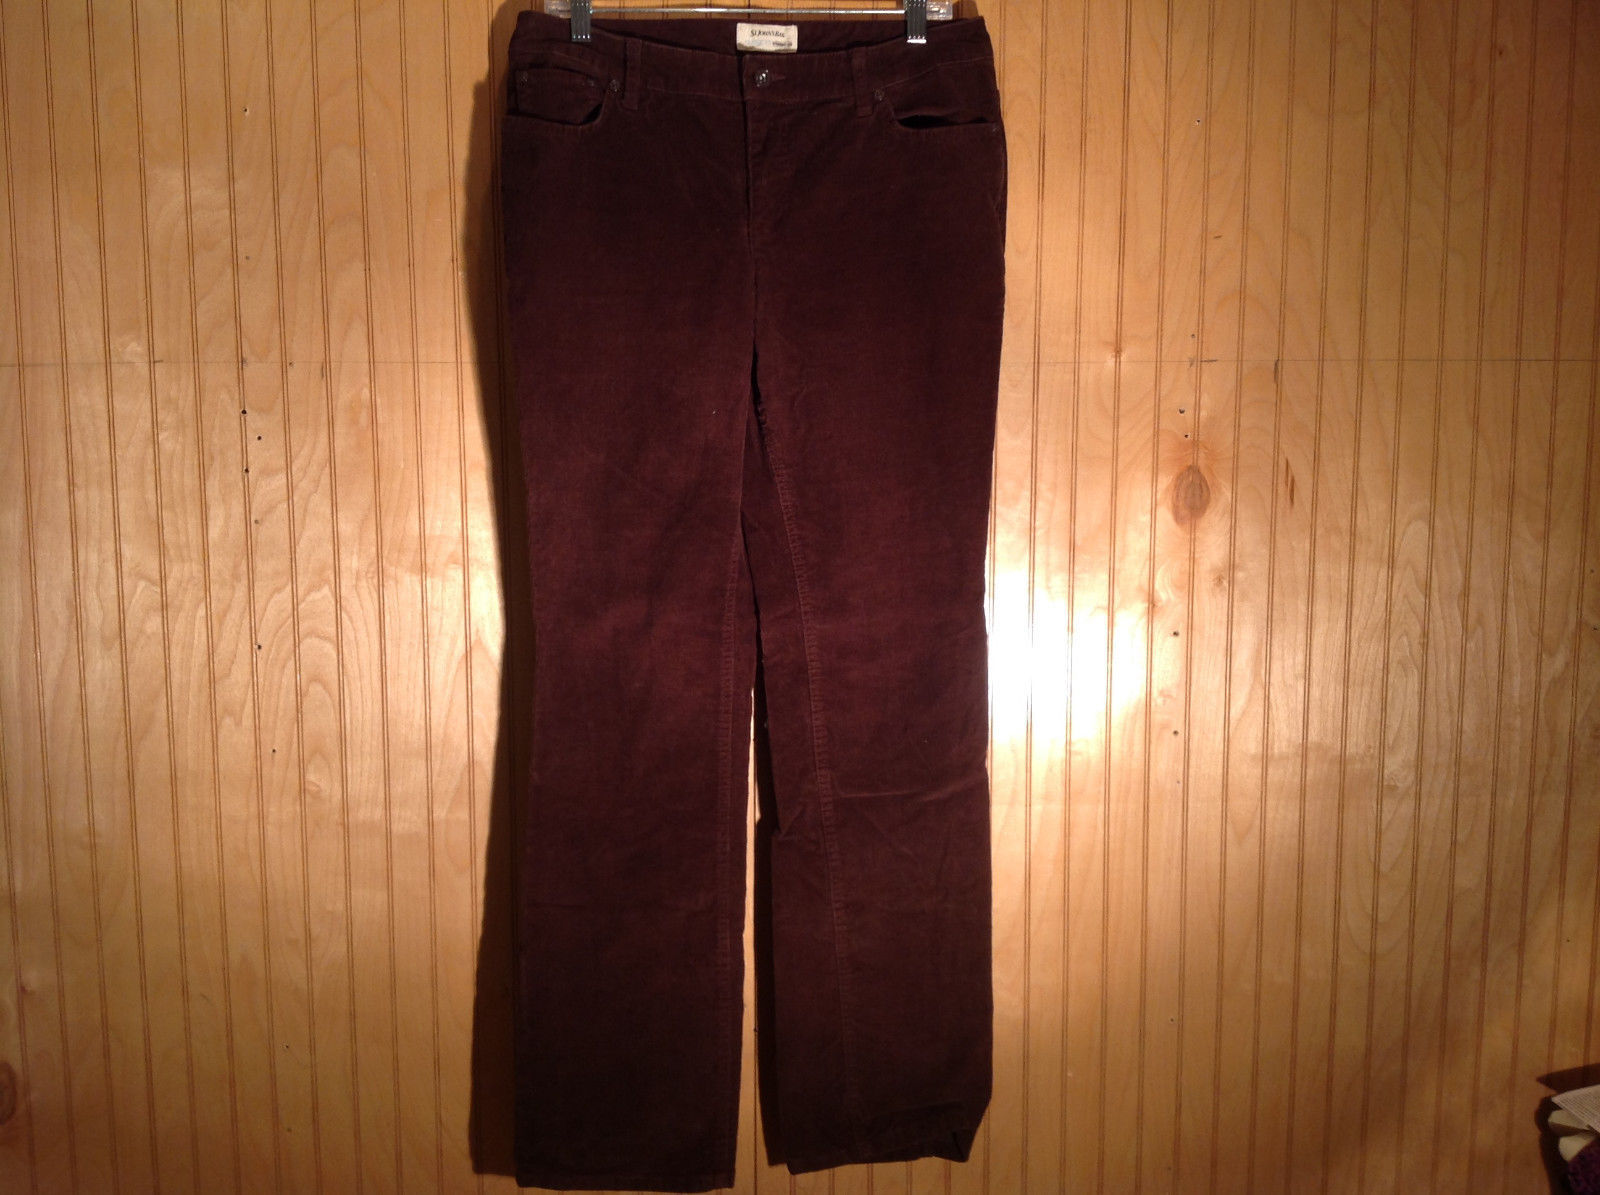 St Johns Bay Dark Purple Corduroy Classic Fit Straight Leg Casual Pants Size 8